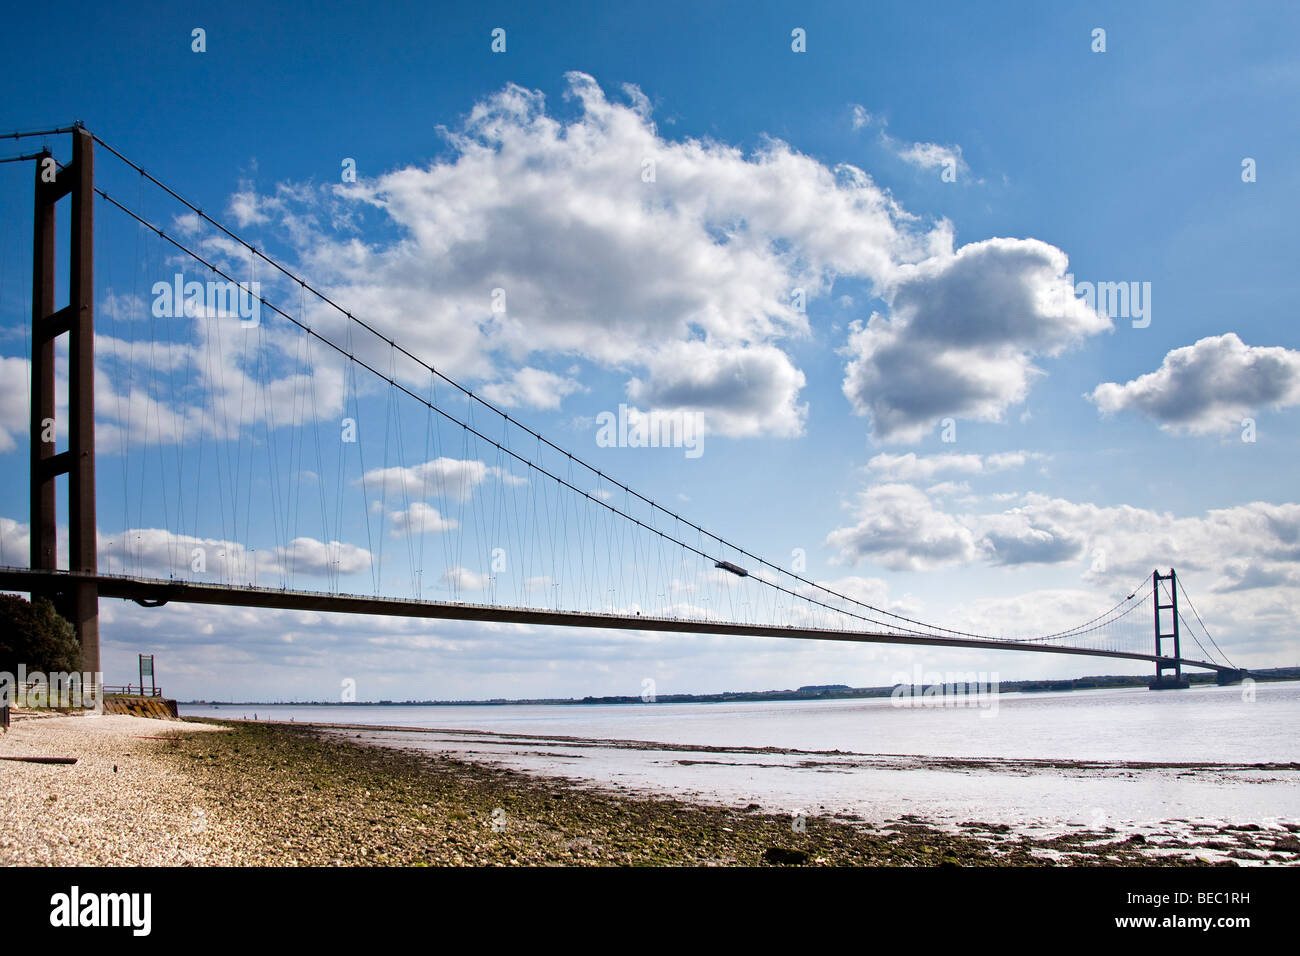 The Humber Bridge from the North shore, Hessle, Yorkshire - Stock Image